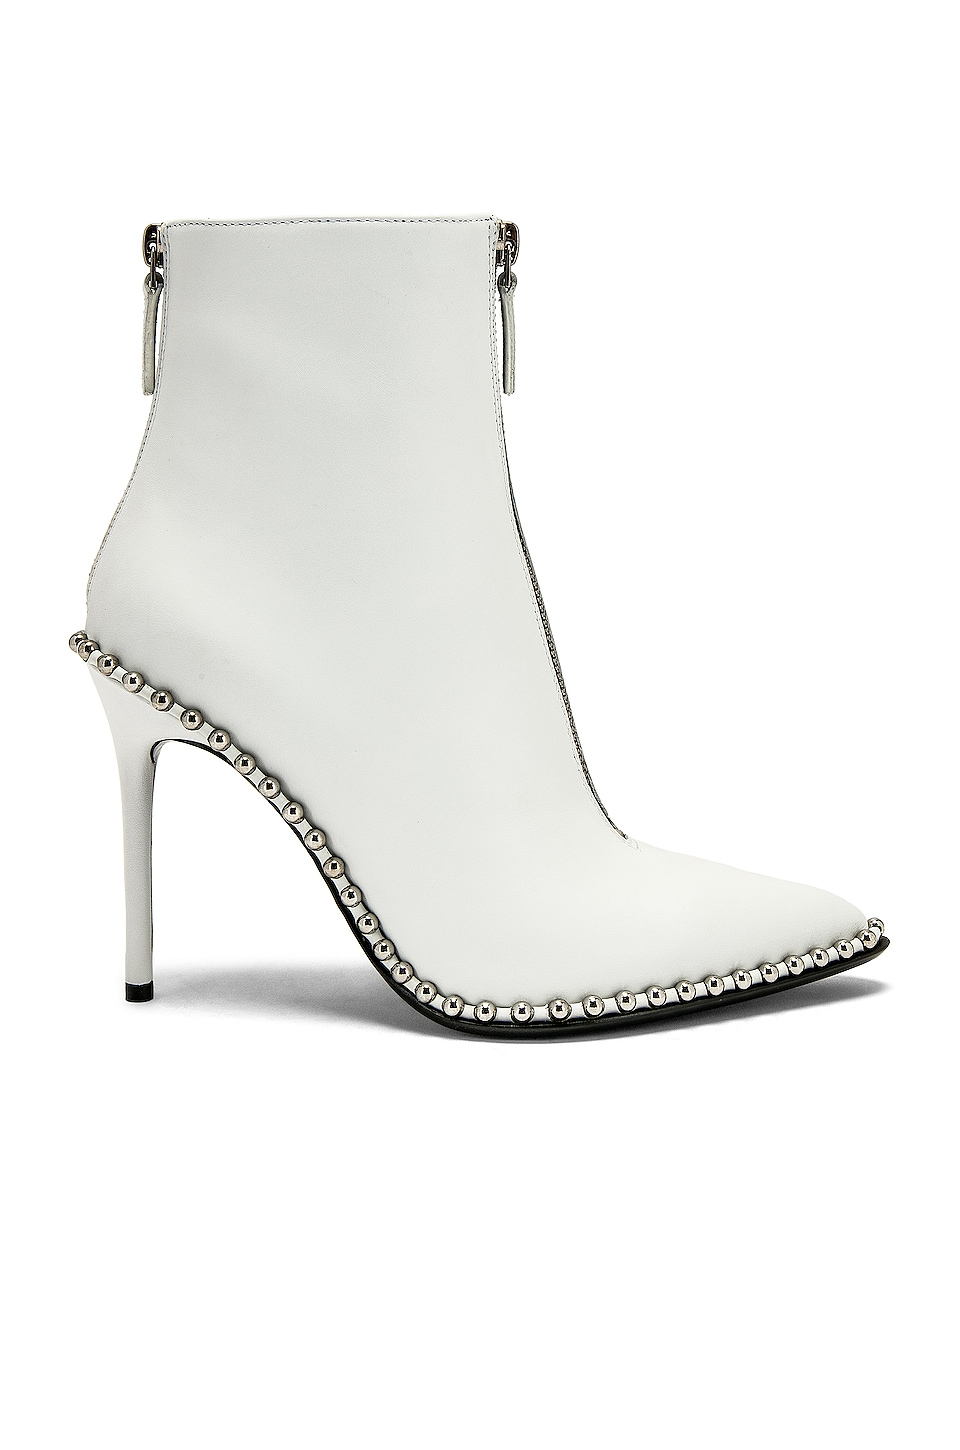 Alexander Wang Eri Bootie in White Leather